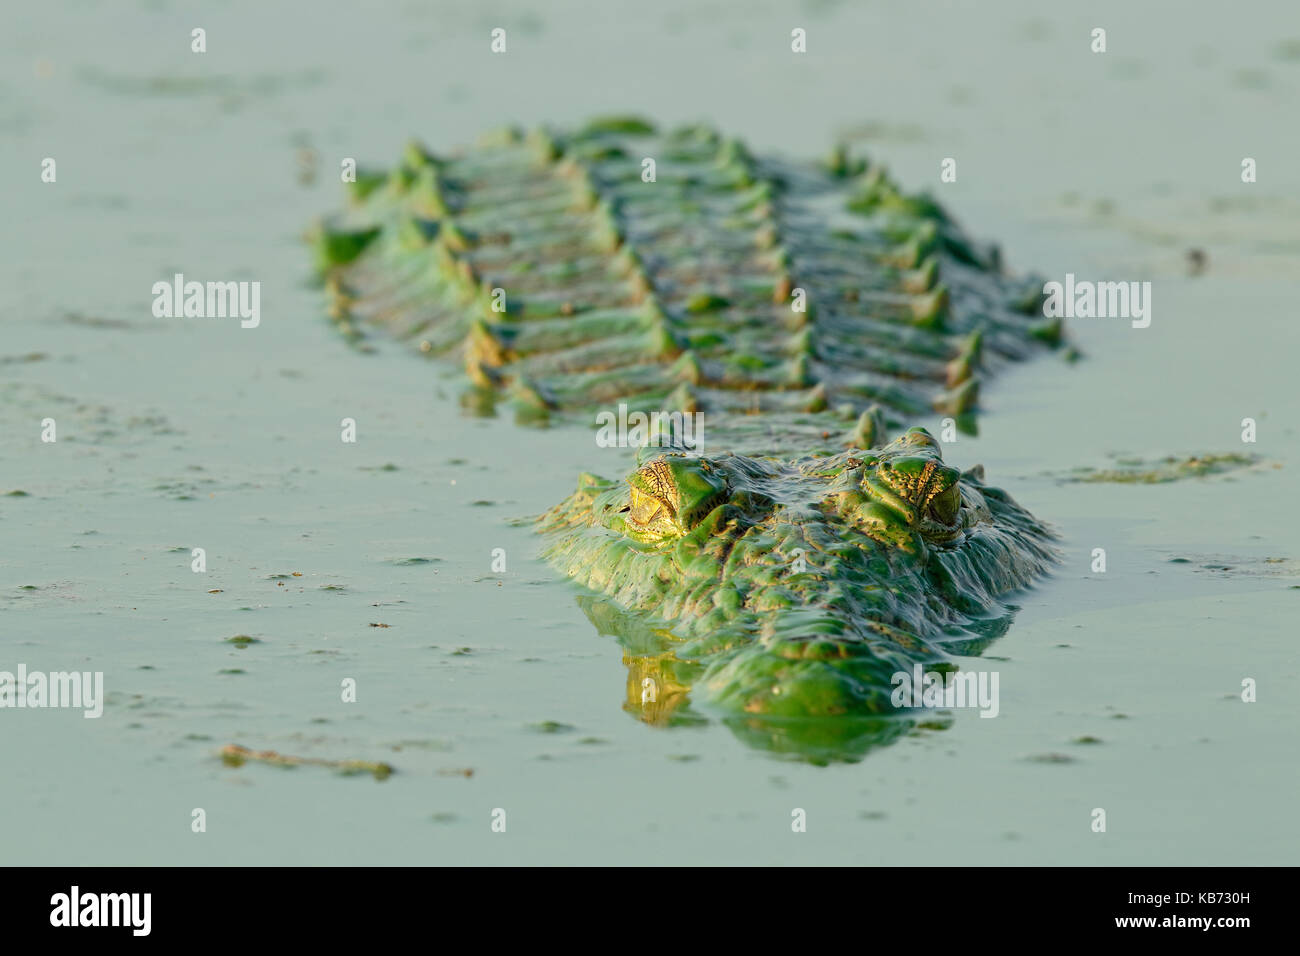 Nile Crocodile (Crocodylus niloticus) floating on water surface. The animal has a green color because of the algae - Stock Image